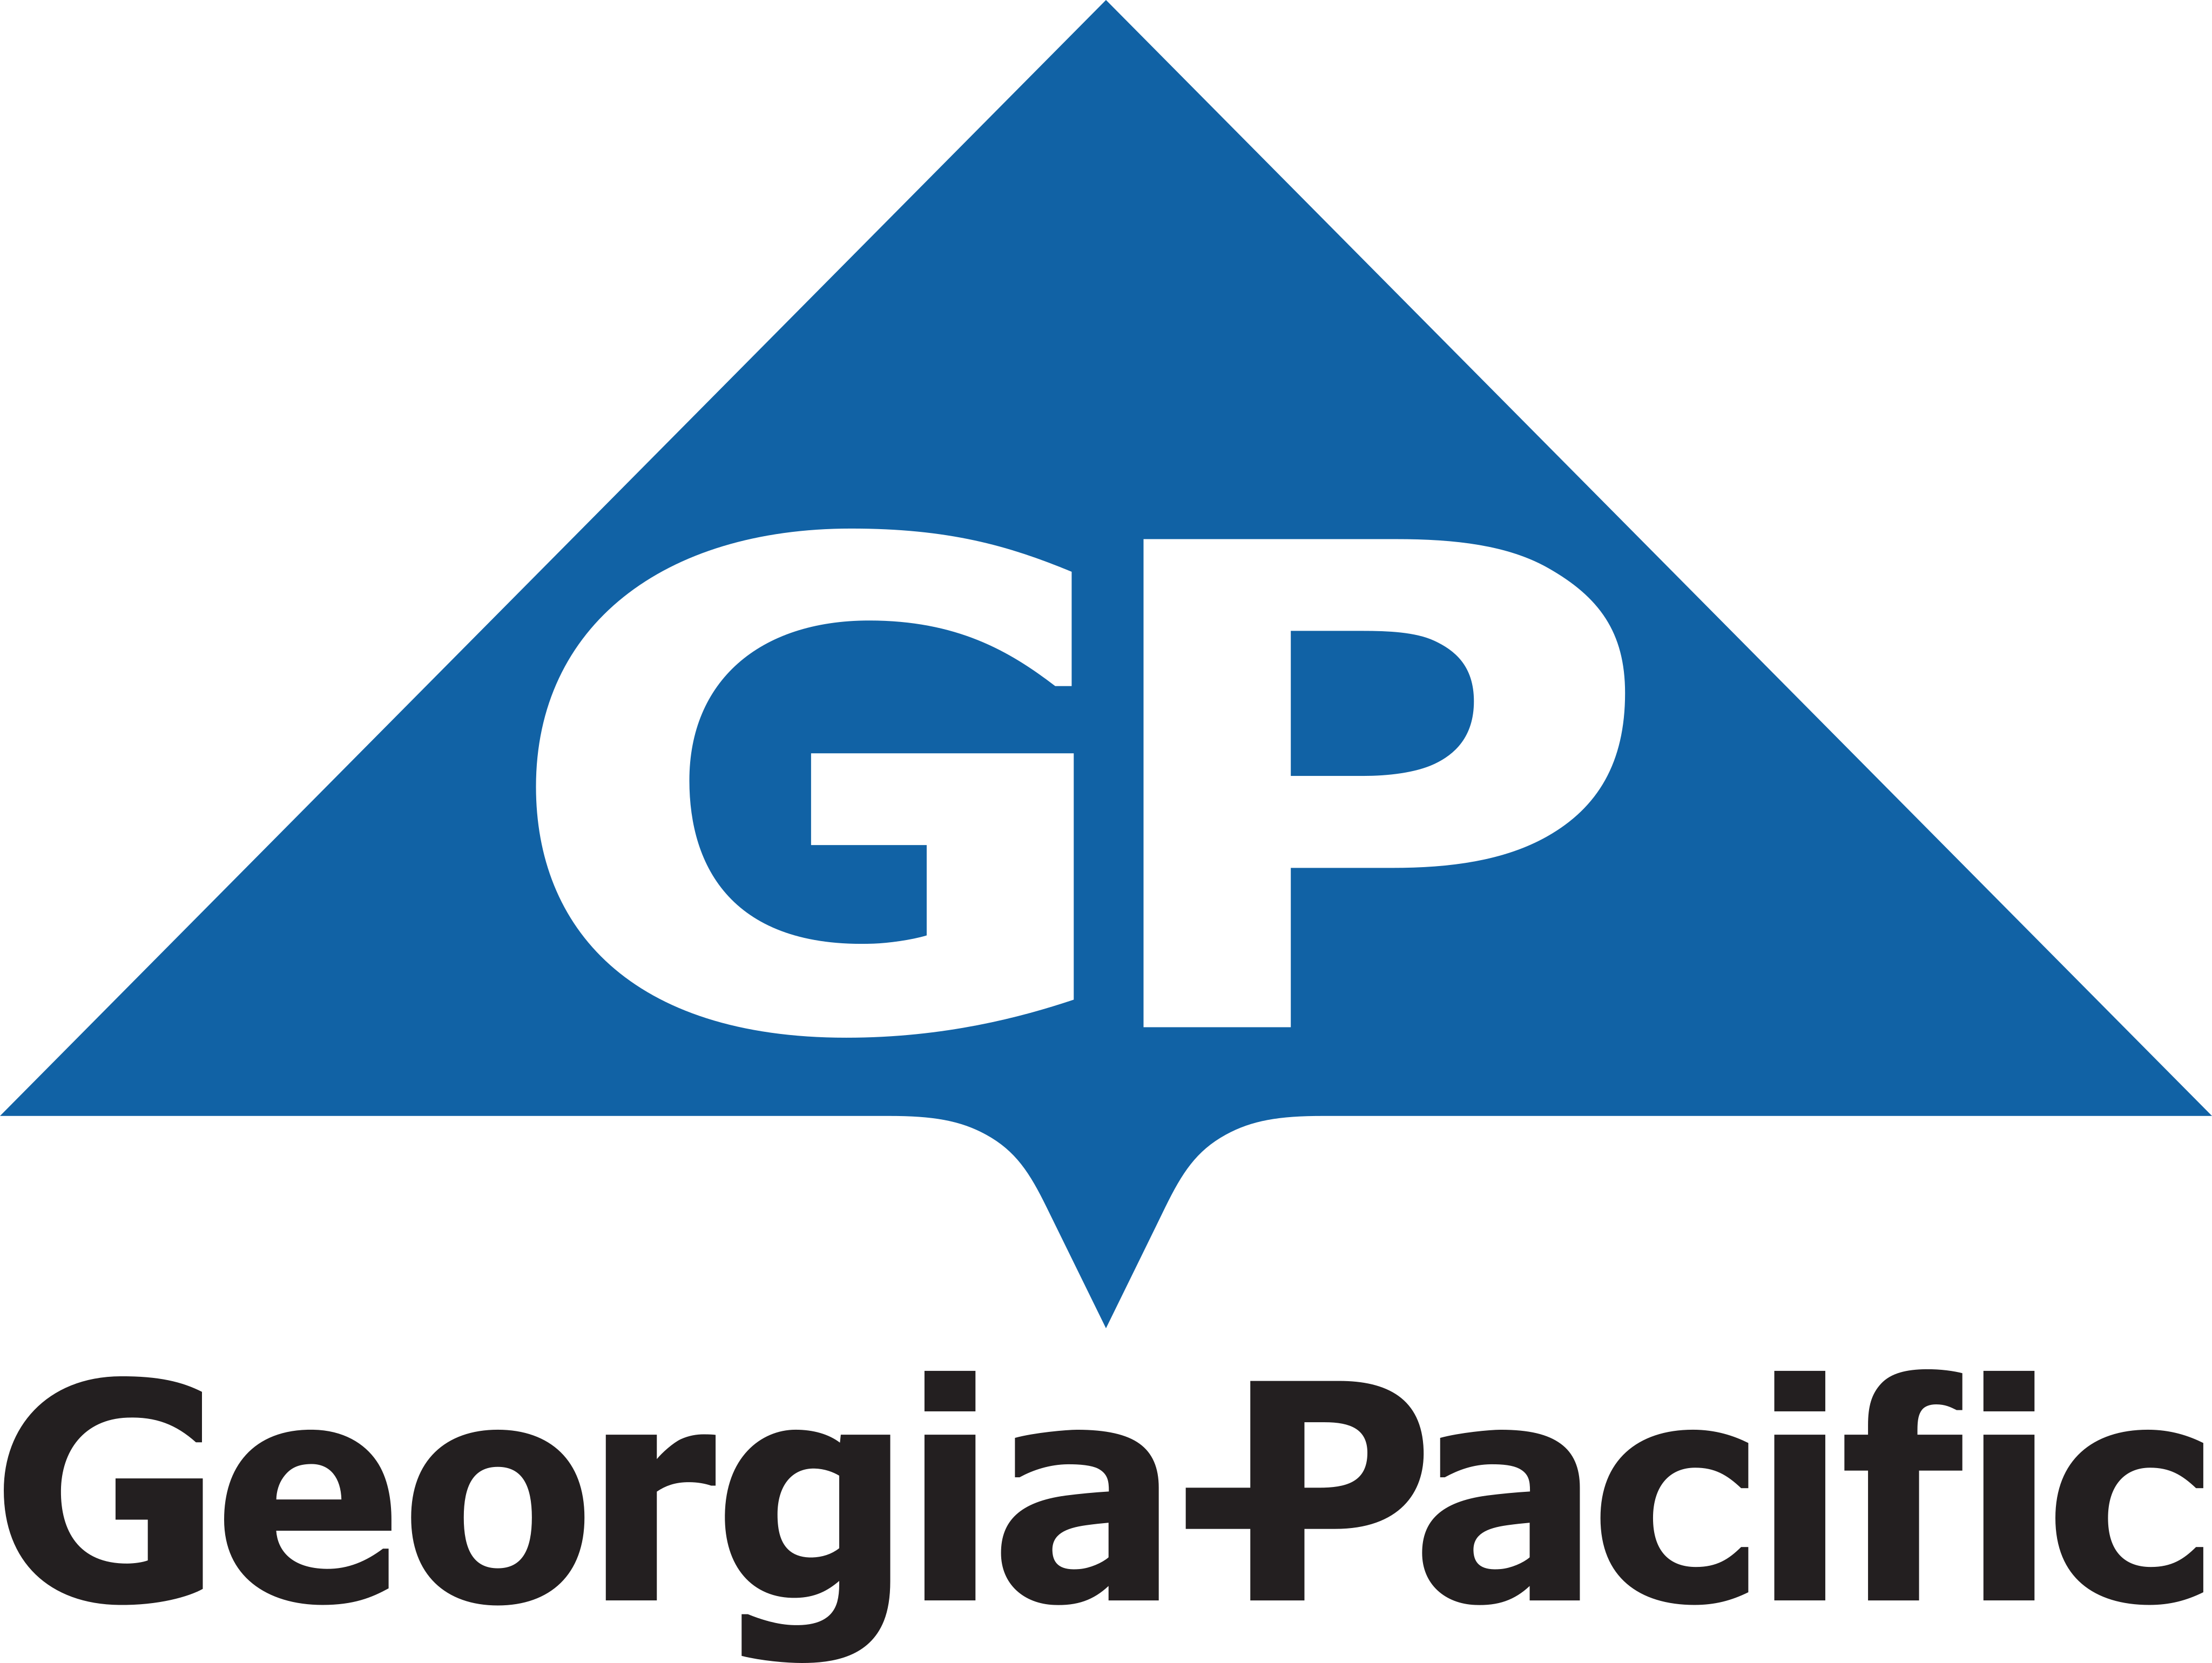 georgia pacific logo 1 - Georgia-Pacific Logo